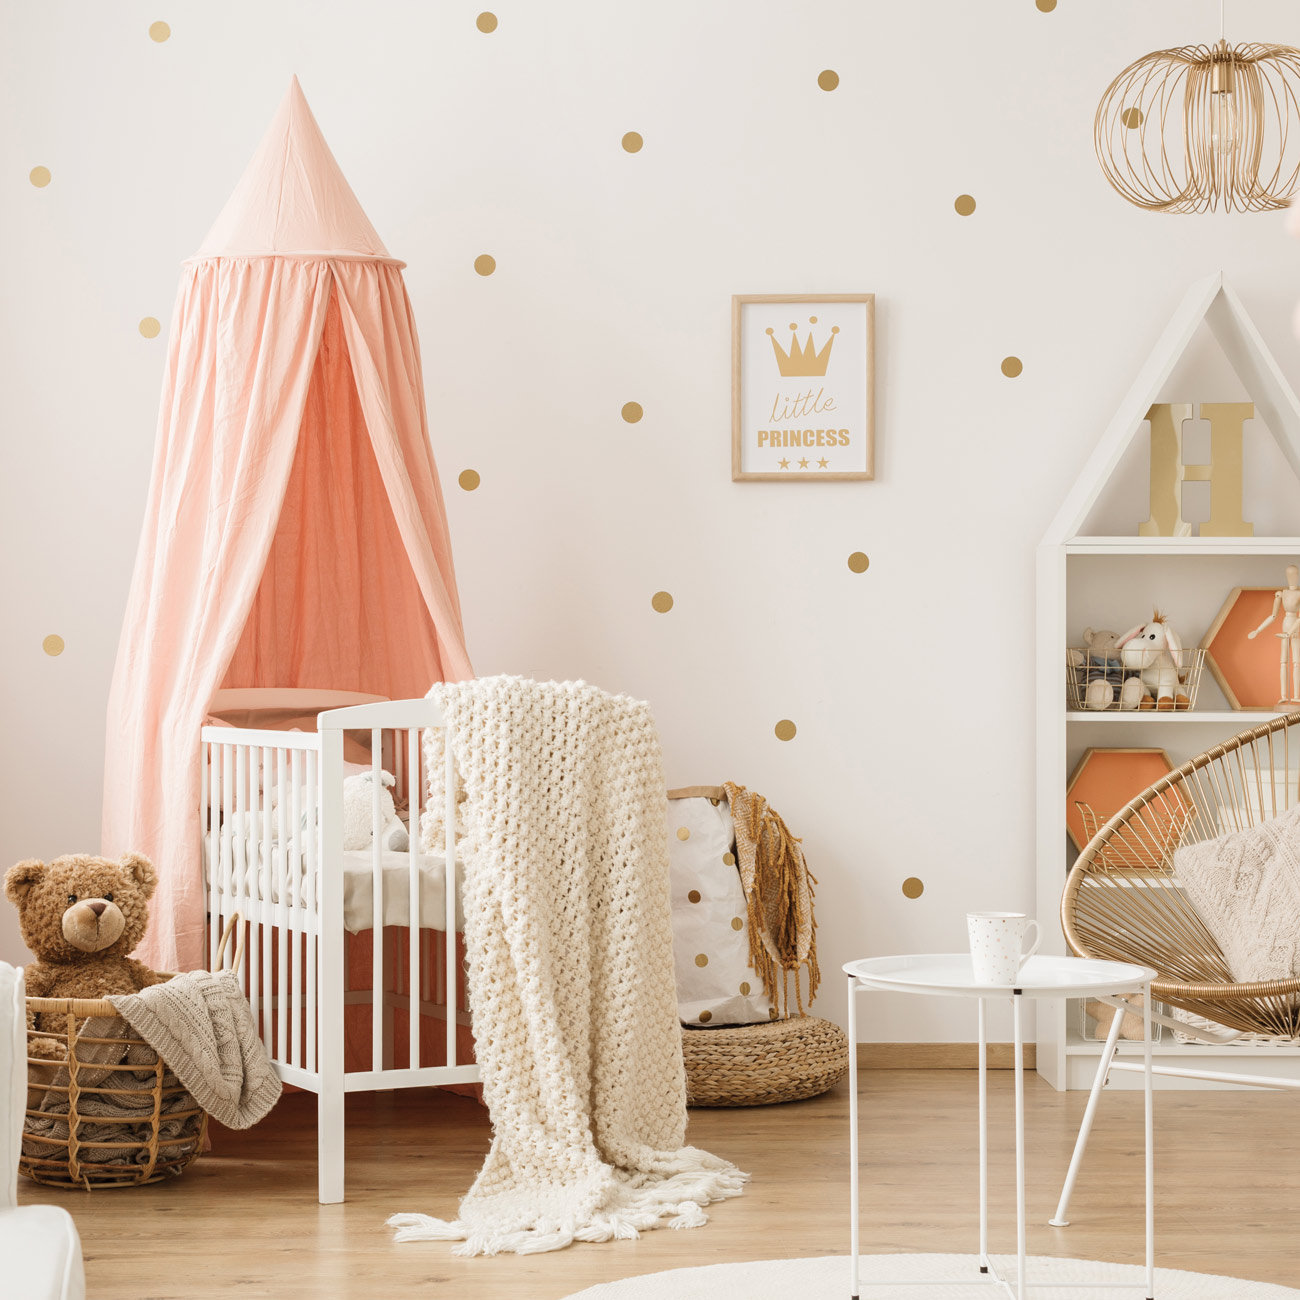 Gold Polka Dots Kids Room Baby Room Wall Stickers Children Home Decor Nursery Wall Decals Peel and stick vinyl decals JJ001